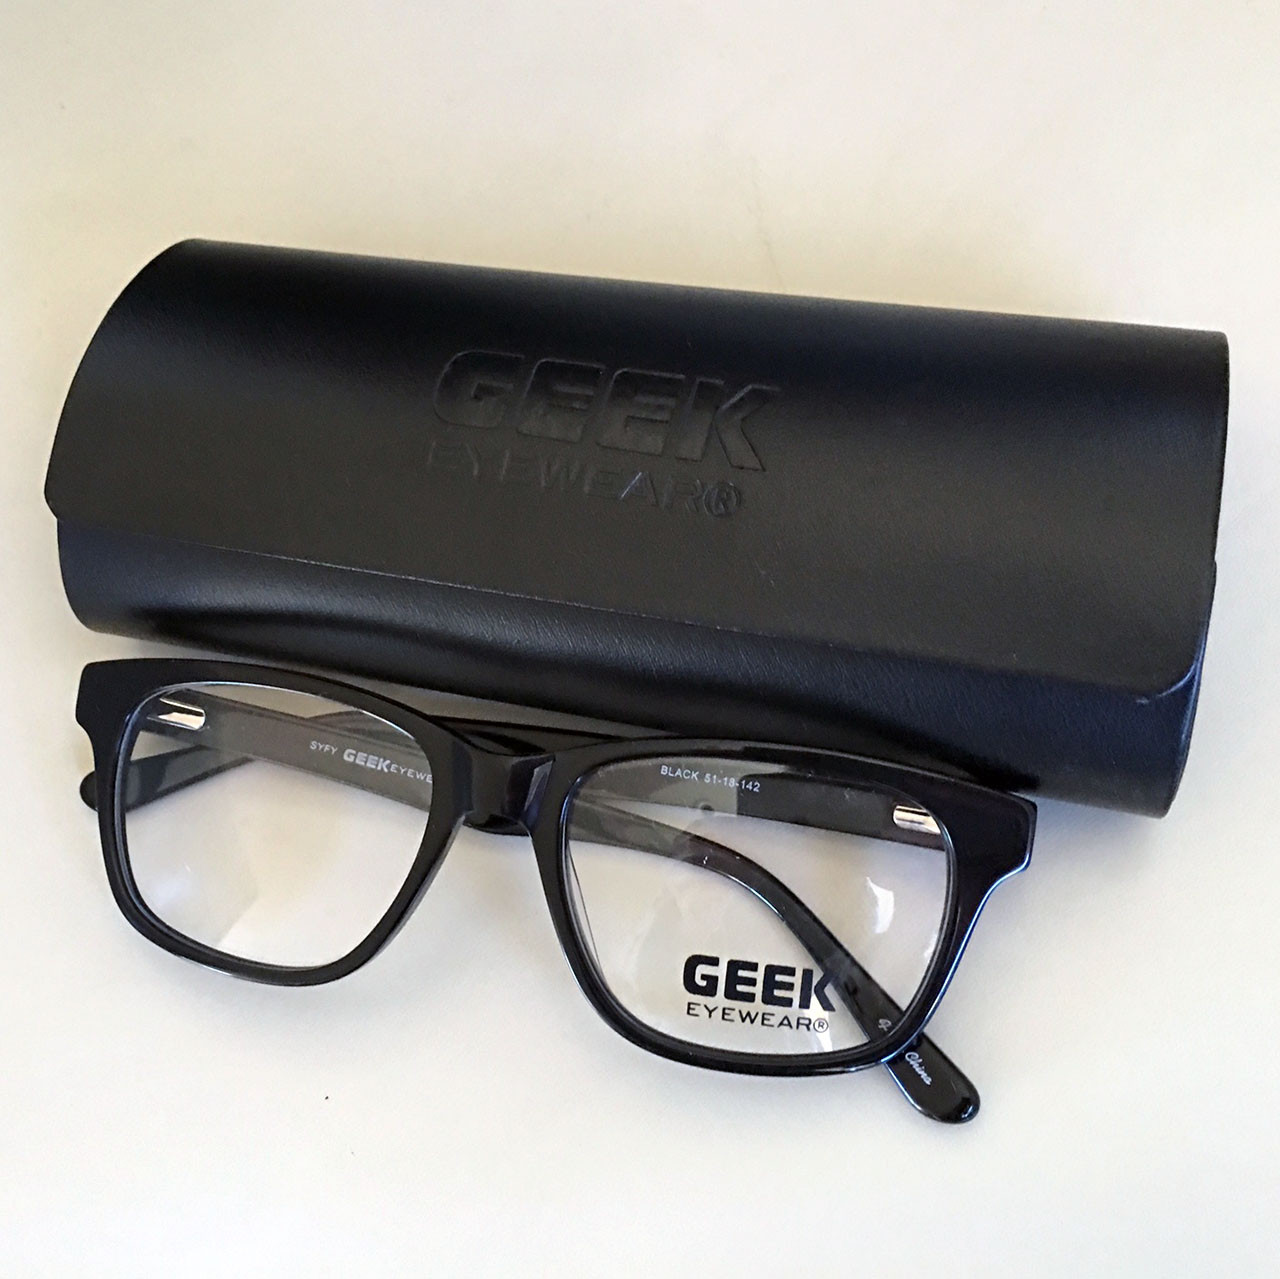 Free Super Geek Case